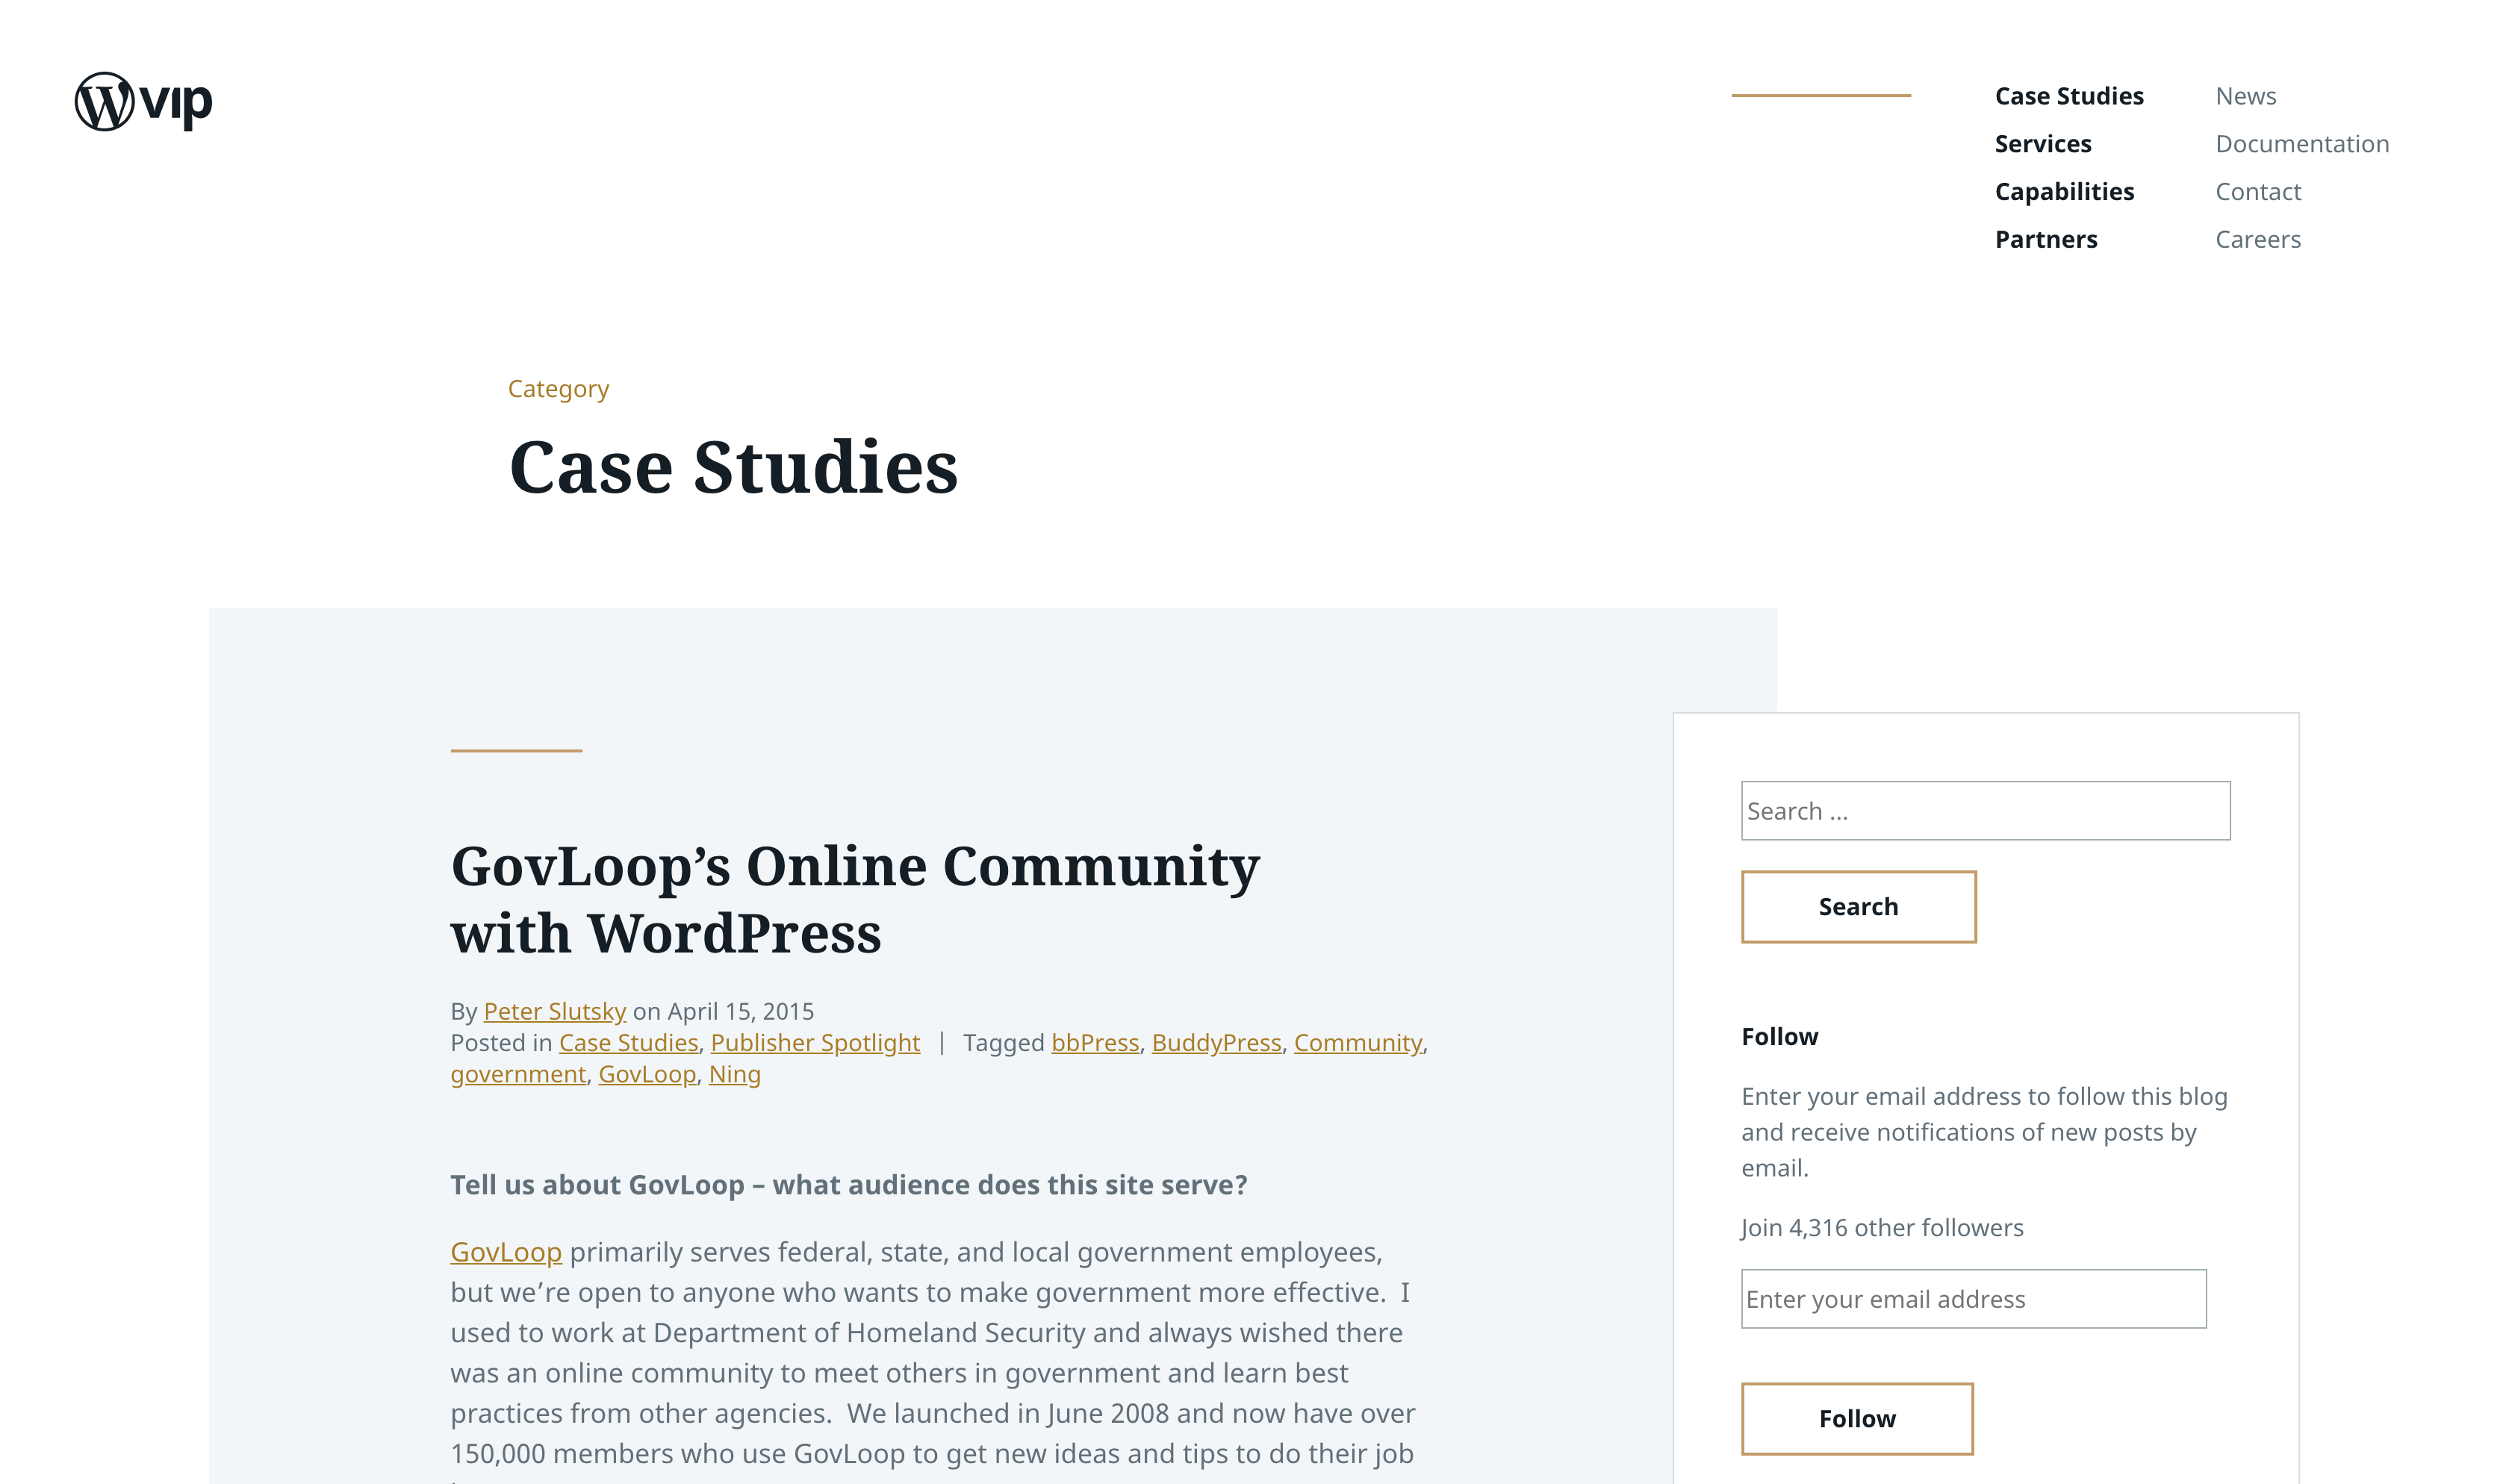 The WordPress.com Case Studies page.